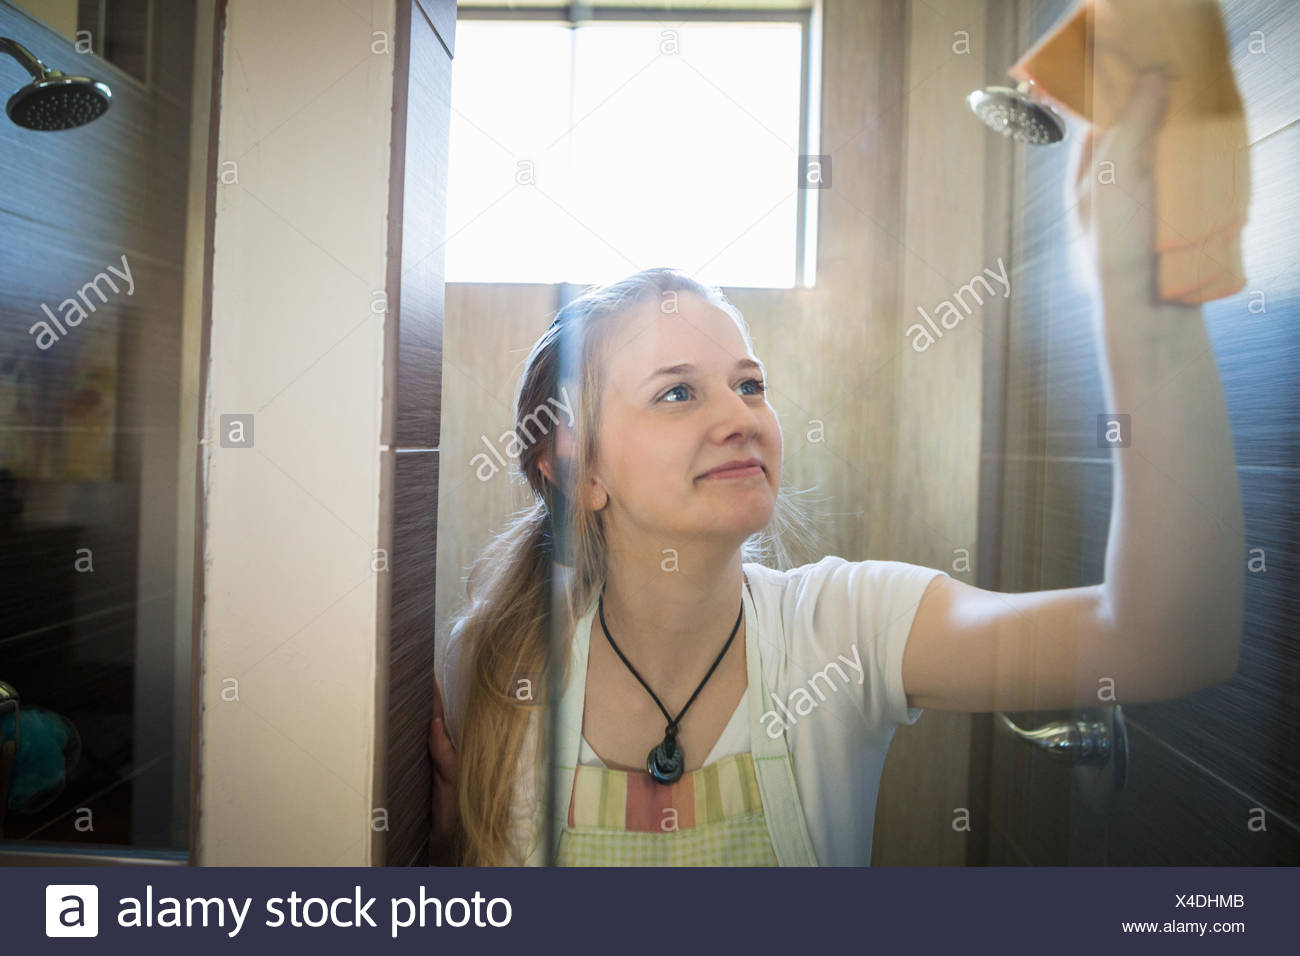 Bathroom Cleaner Stock Photos Amp Bathroom Cleaner Stock